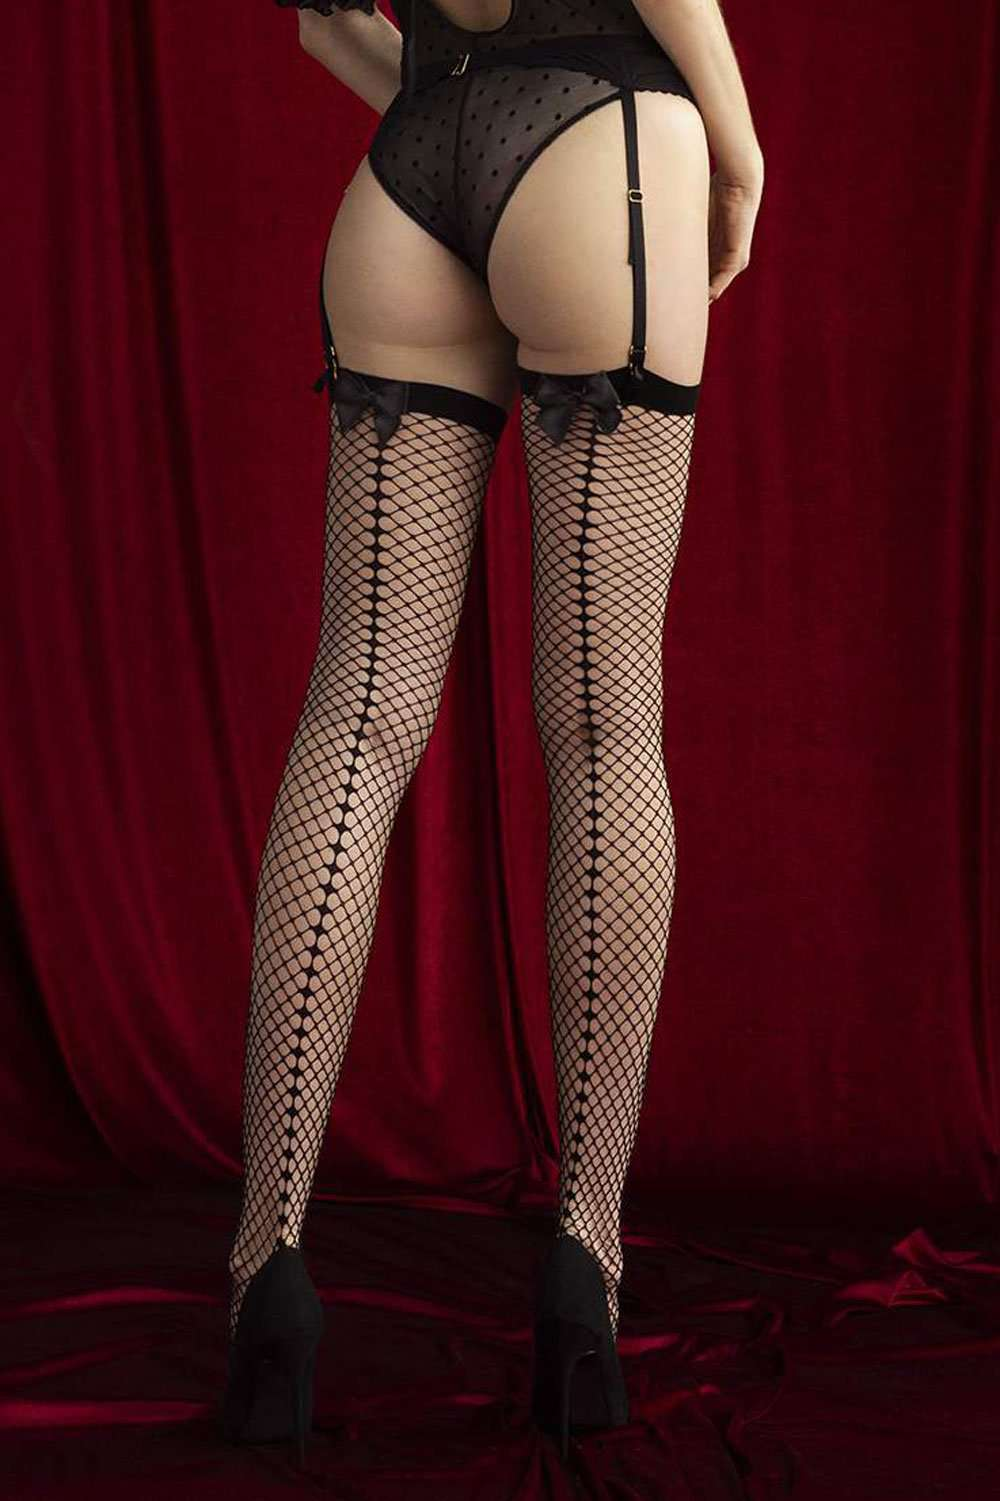 FiORE Sensual Satine Stockings 30 Denier O4060 - Naughty Knickers